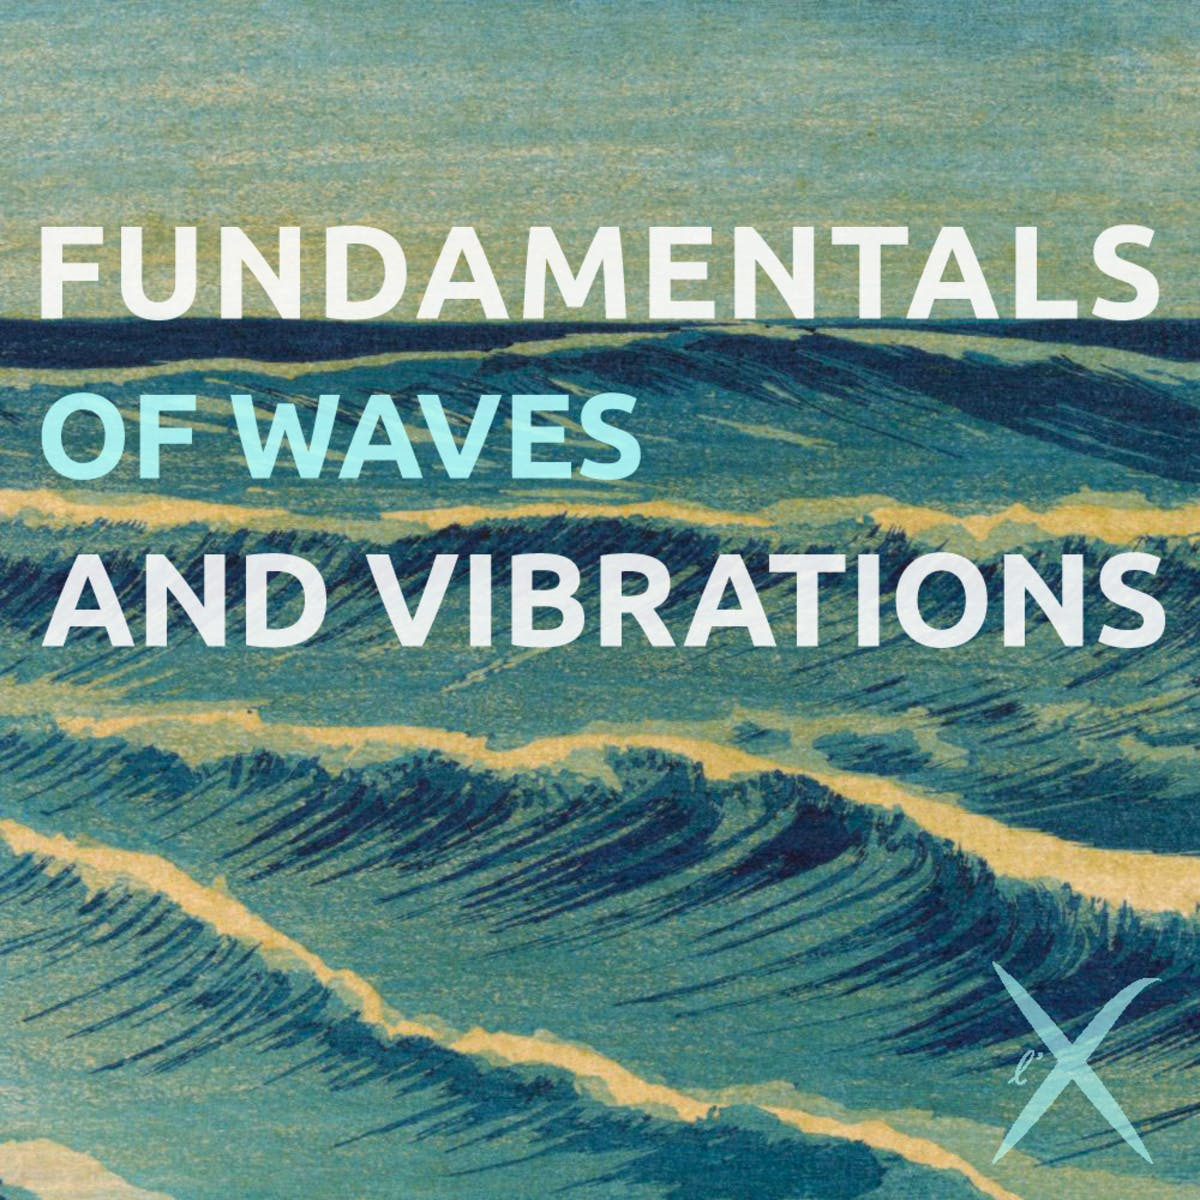 Fundamentals of waves and vibrations